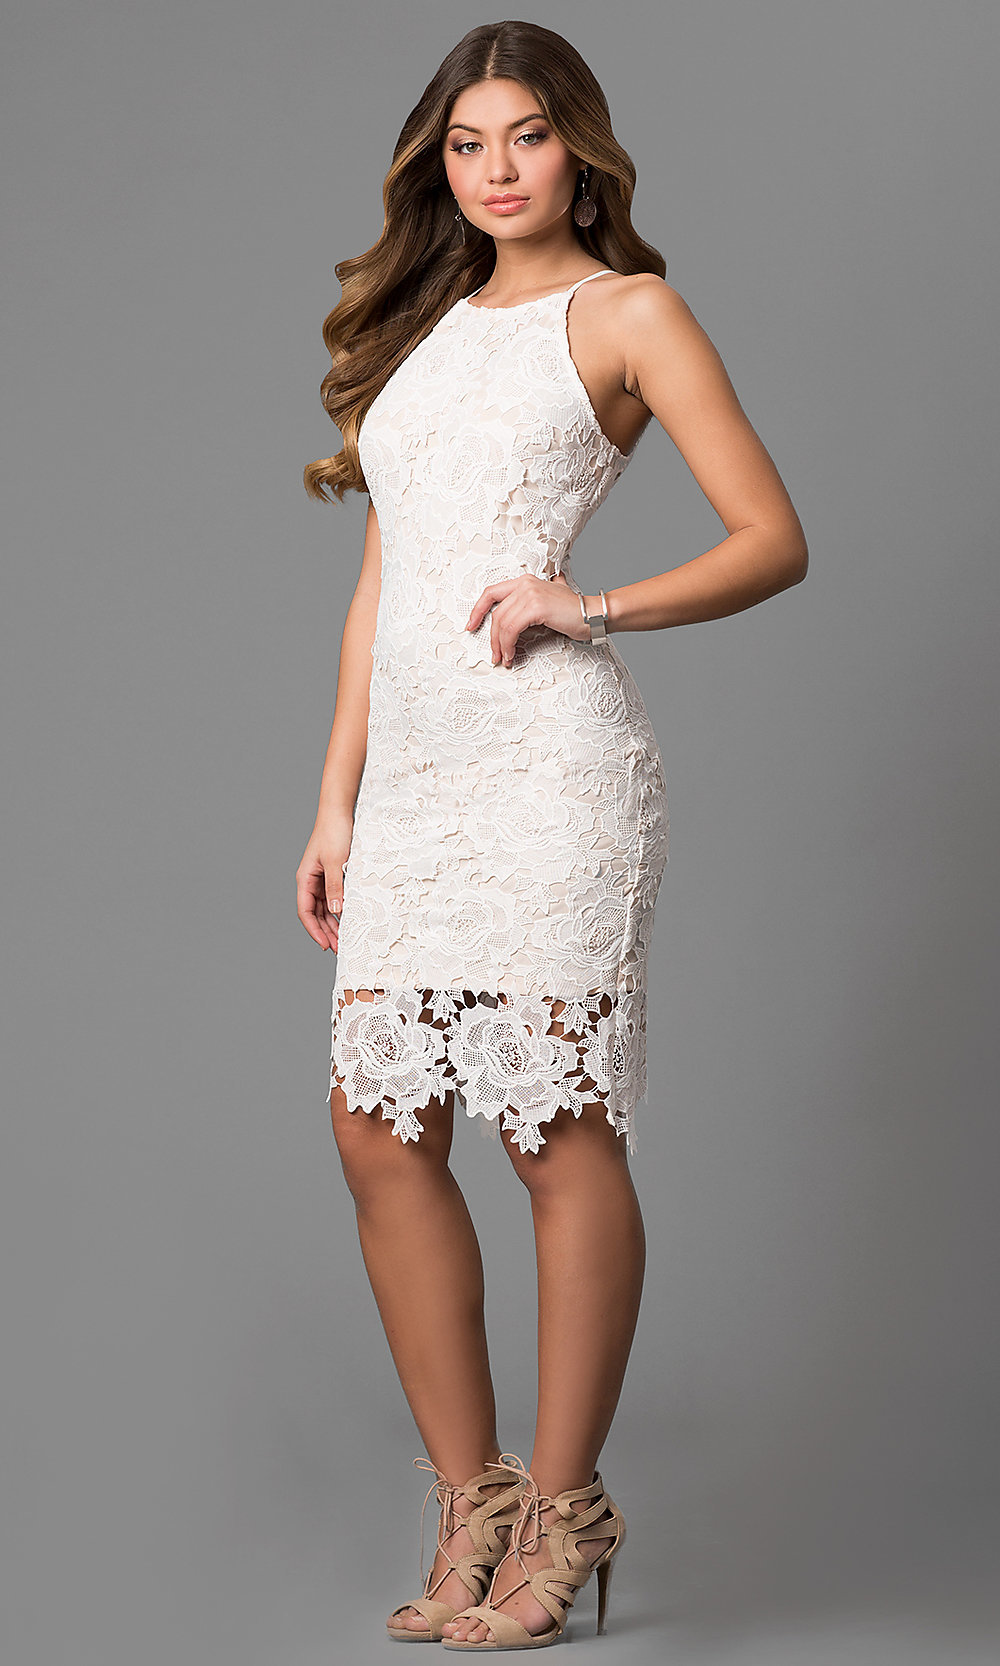 offwhite kneelength graduation lace dress promgirl